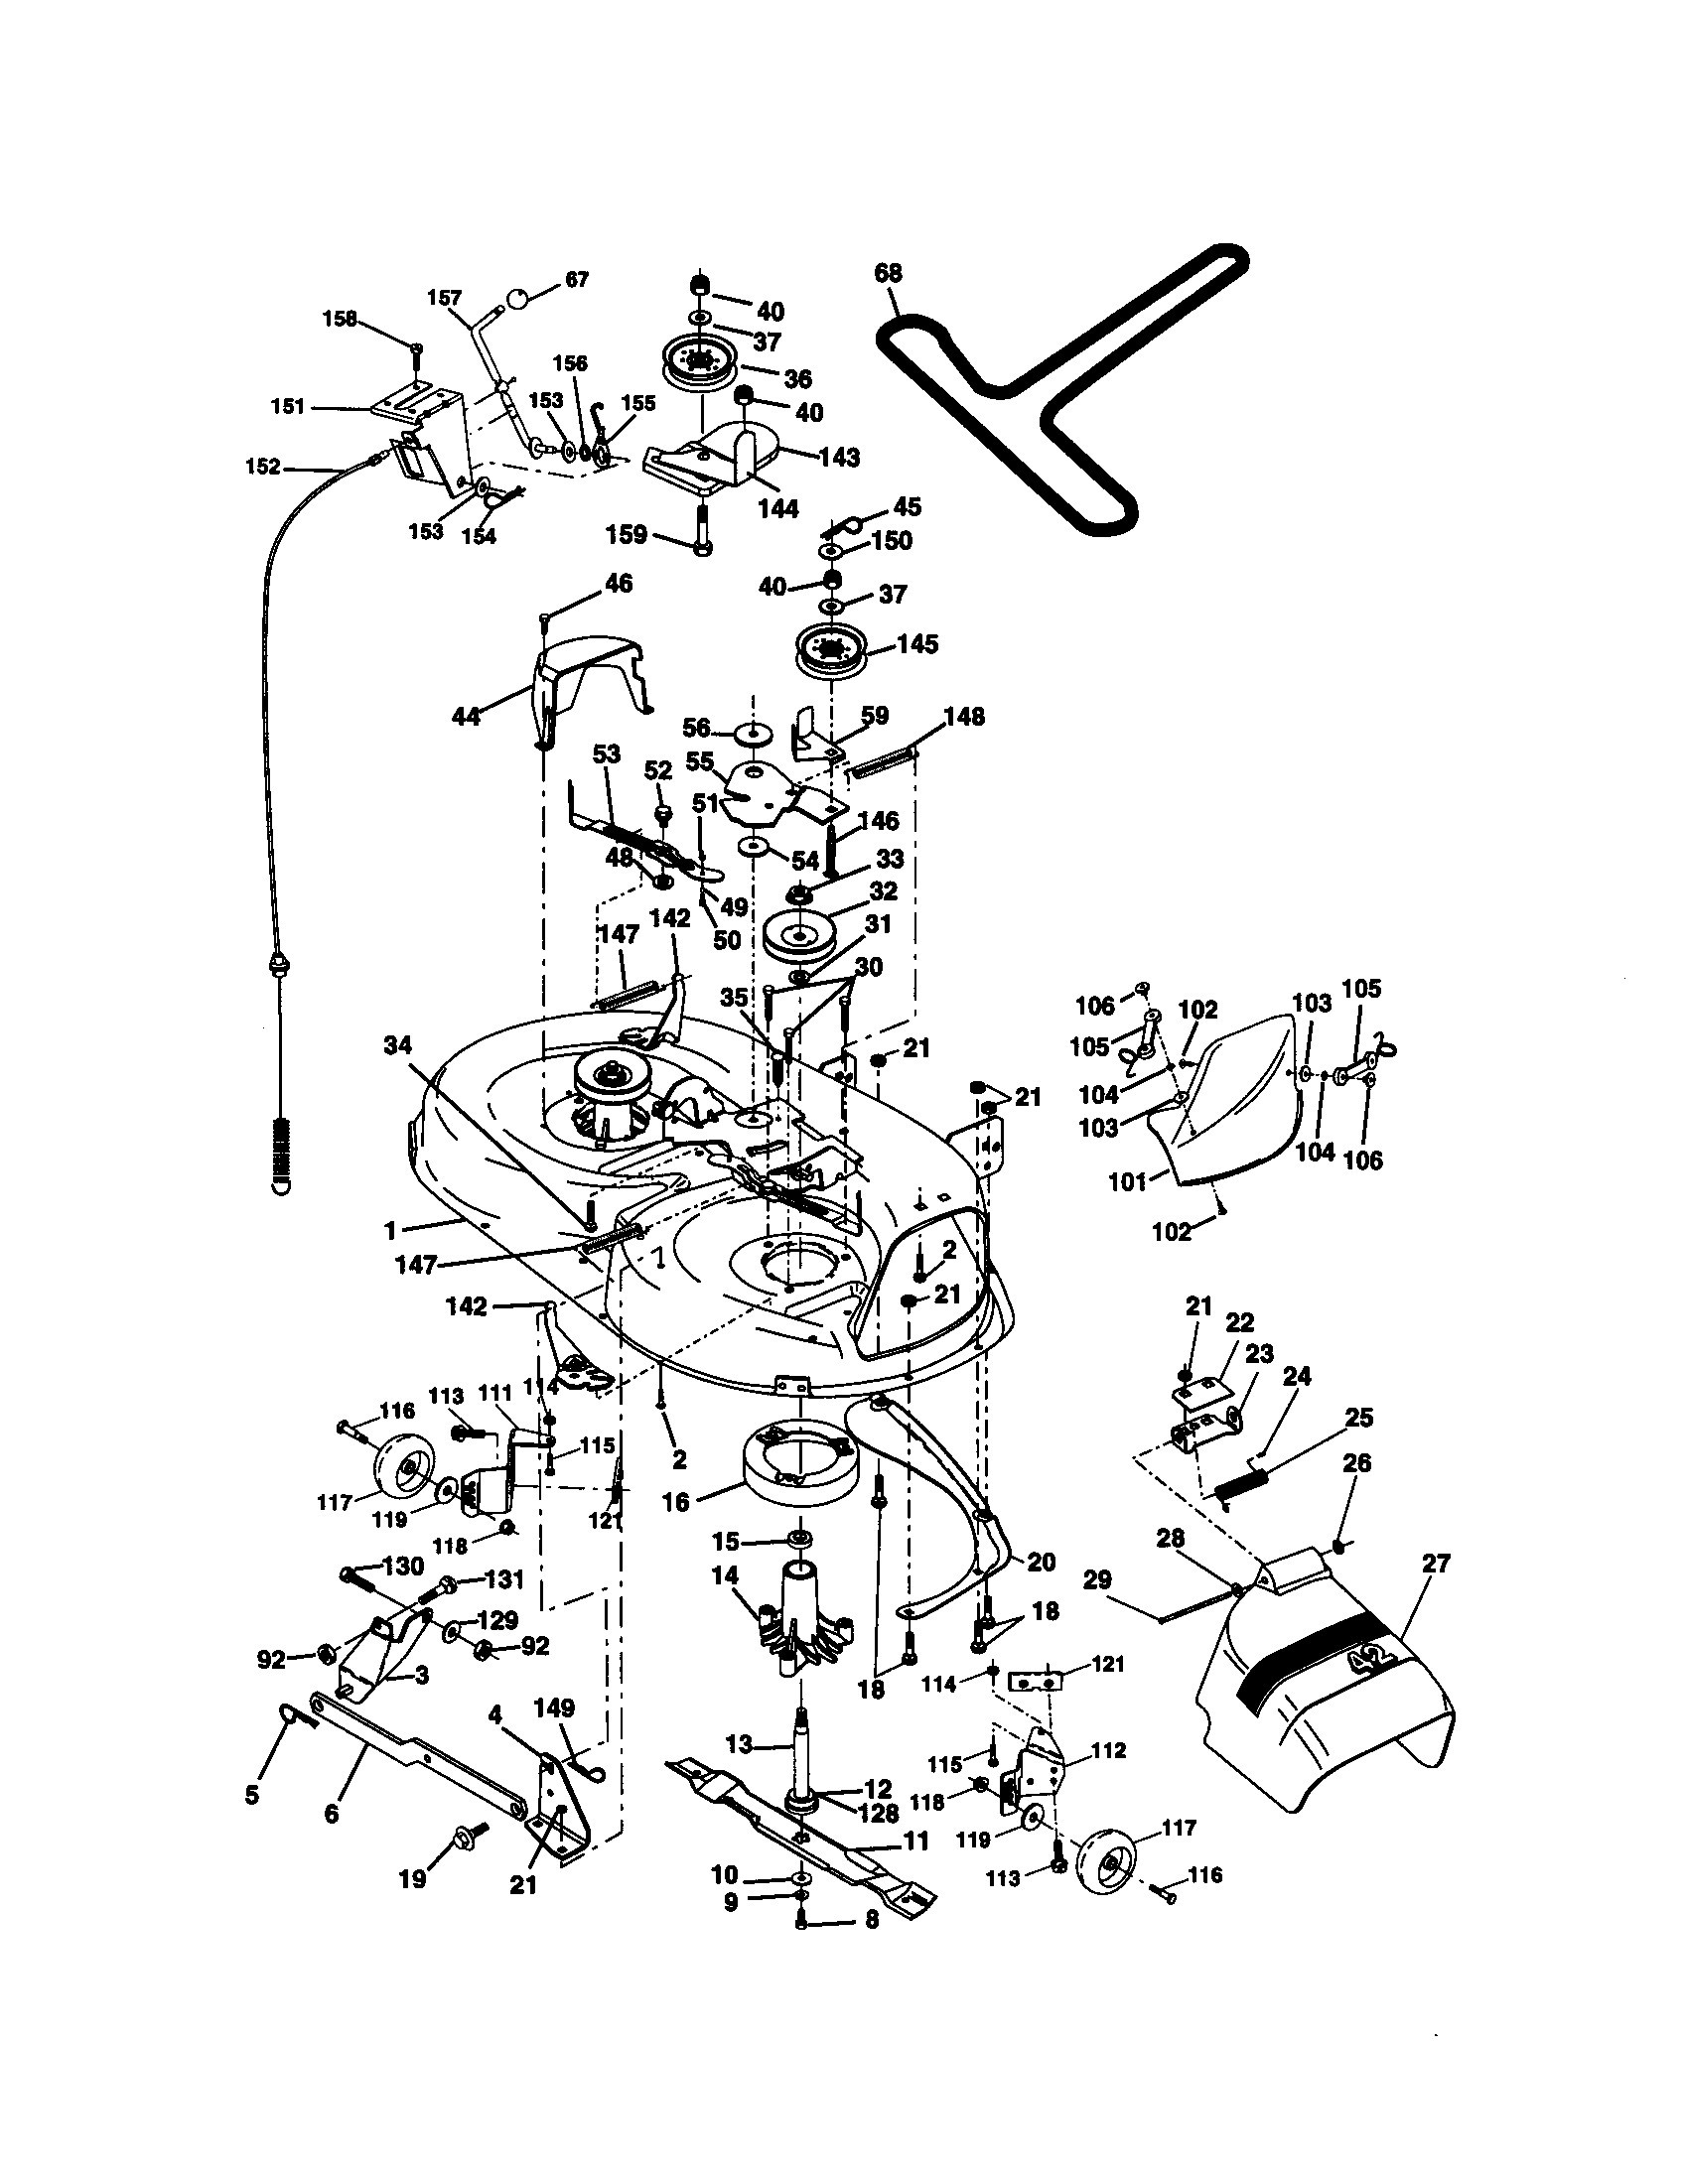 Briggs and Stratton Lawn Mower Engine Diagram | My Wiring DIagram